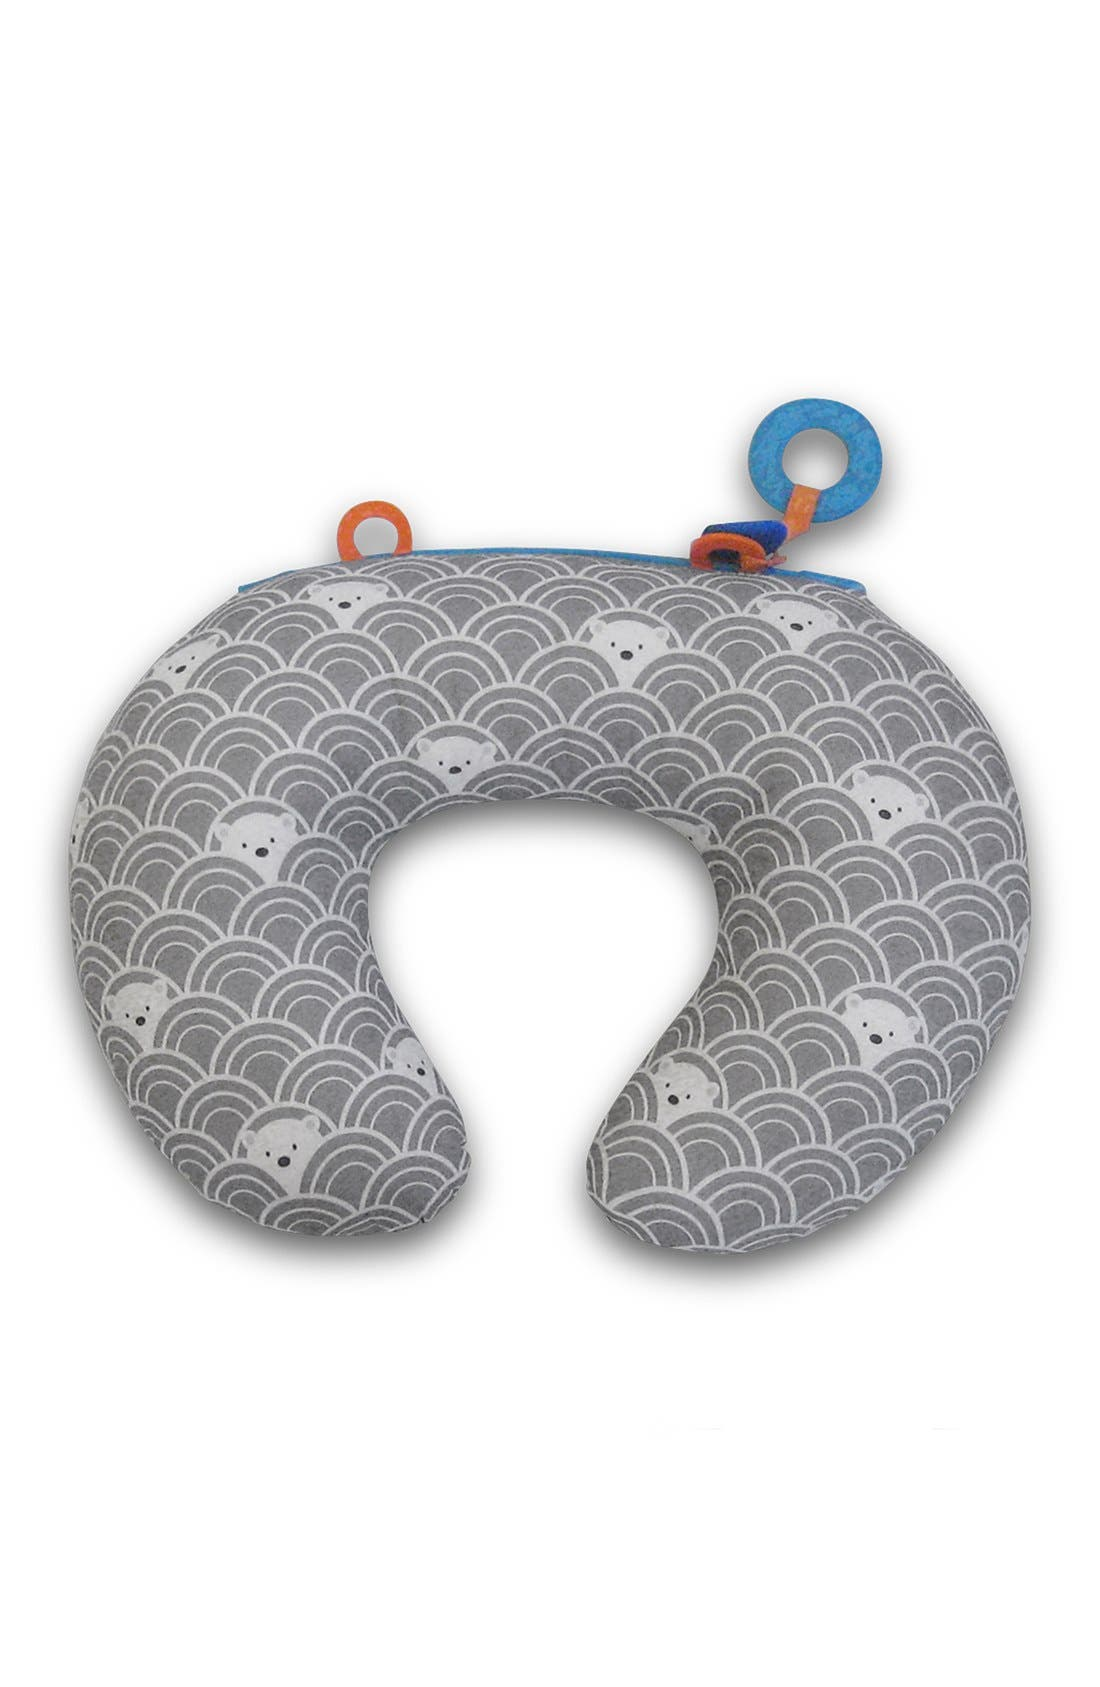 Main Image - Boppy 'Tummy Time - SlideLine Collection' Mini Pillow, Book & Teething Ring (Baby)